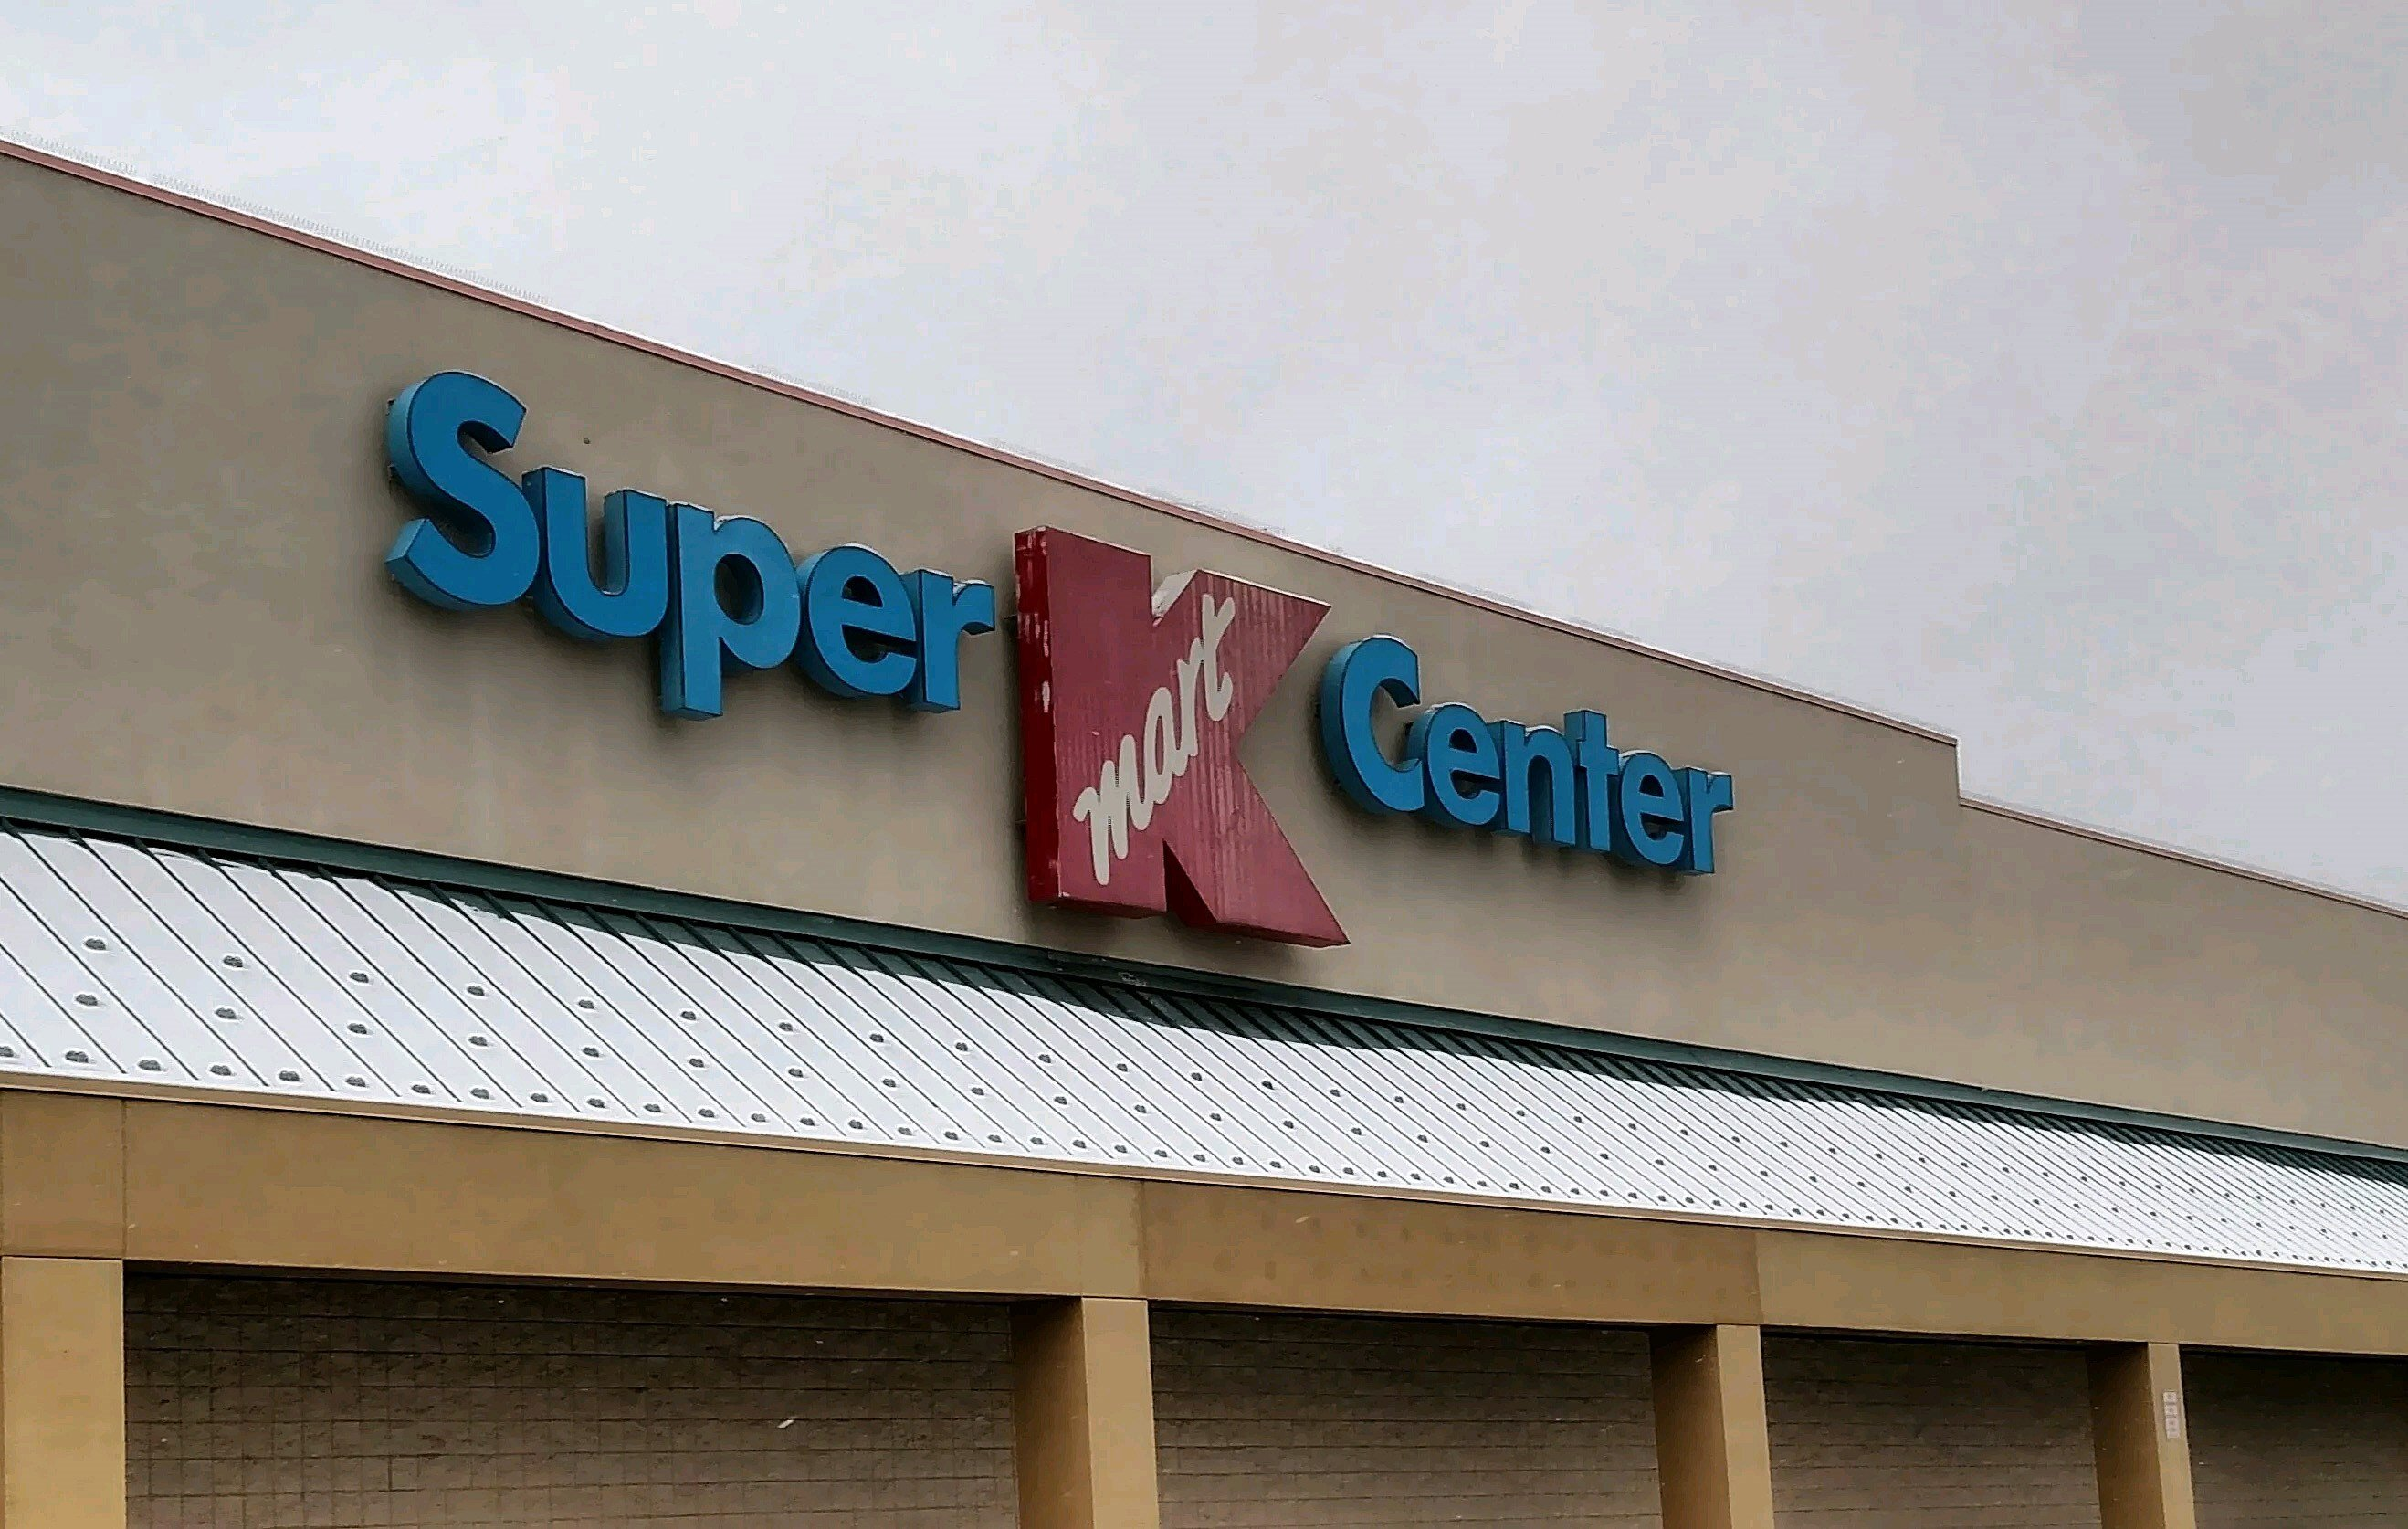 d493ca693 Eastwood Mall confirms deal to open Meijer store - WFMJ.com News ...